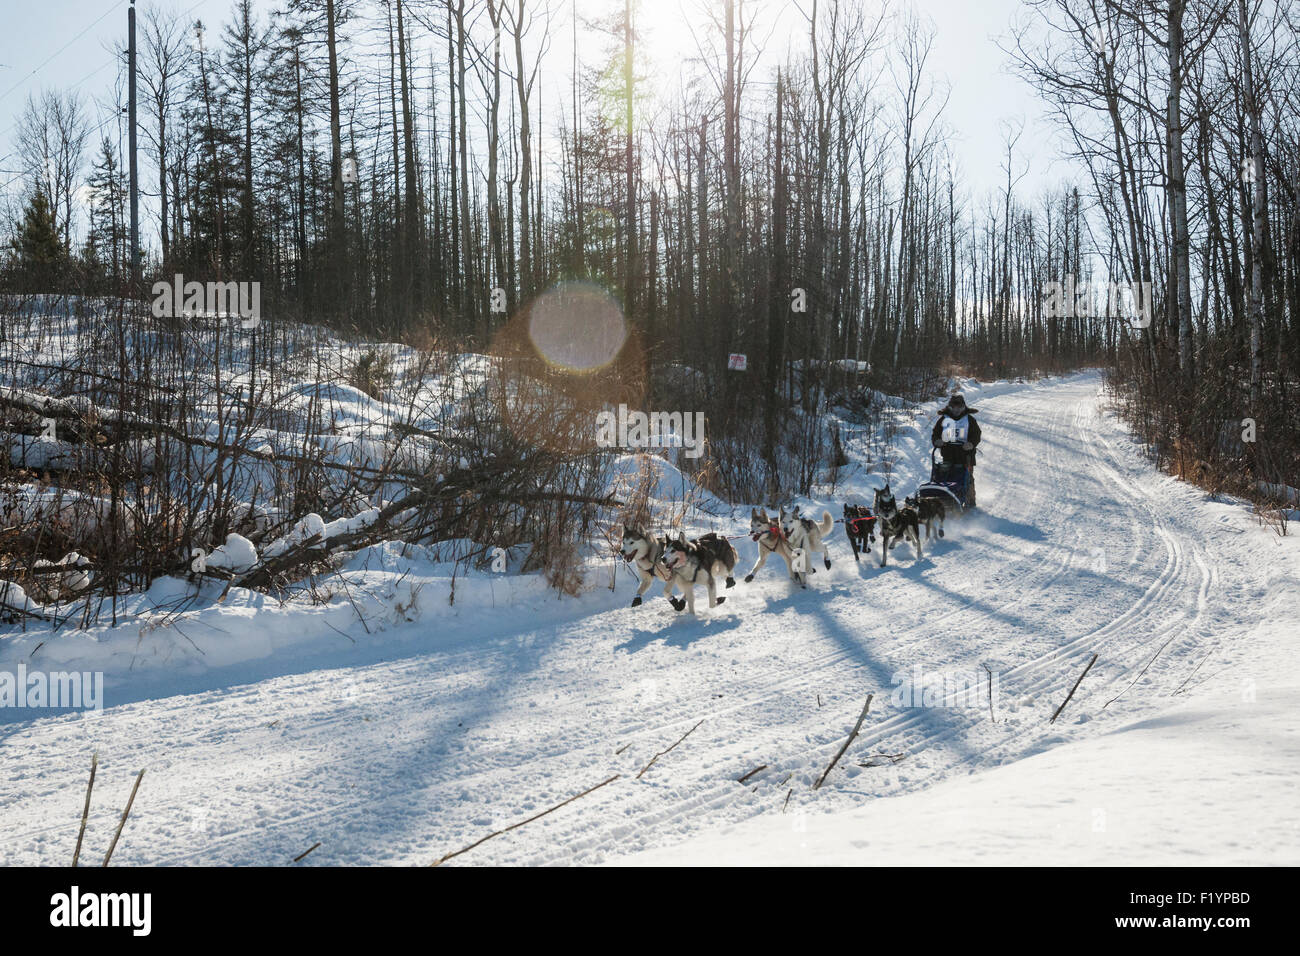 Musher leads his team of husky dogs down a snowy hill during the annual Wolf Track Classic sled dog race, Ely, MN, - Stock Image